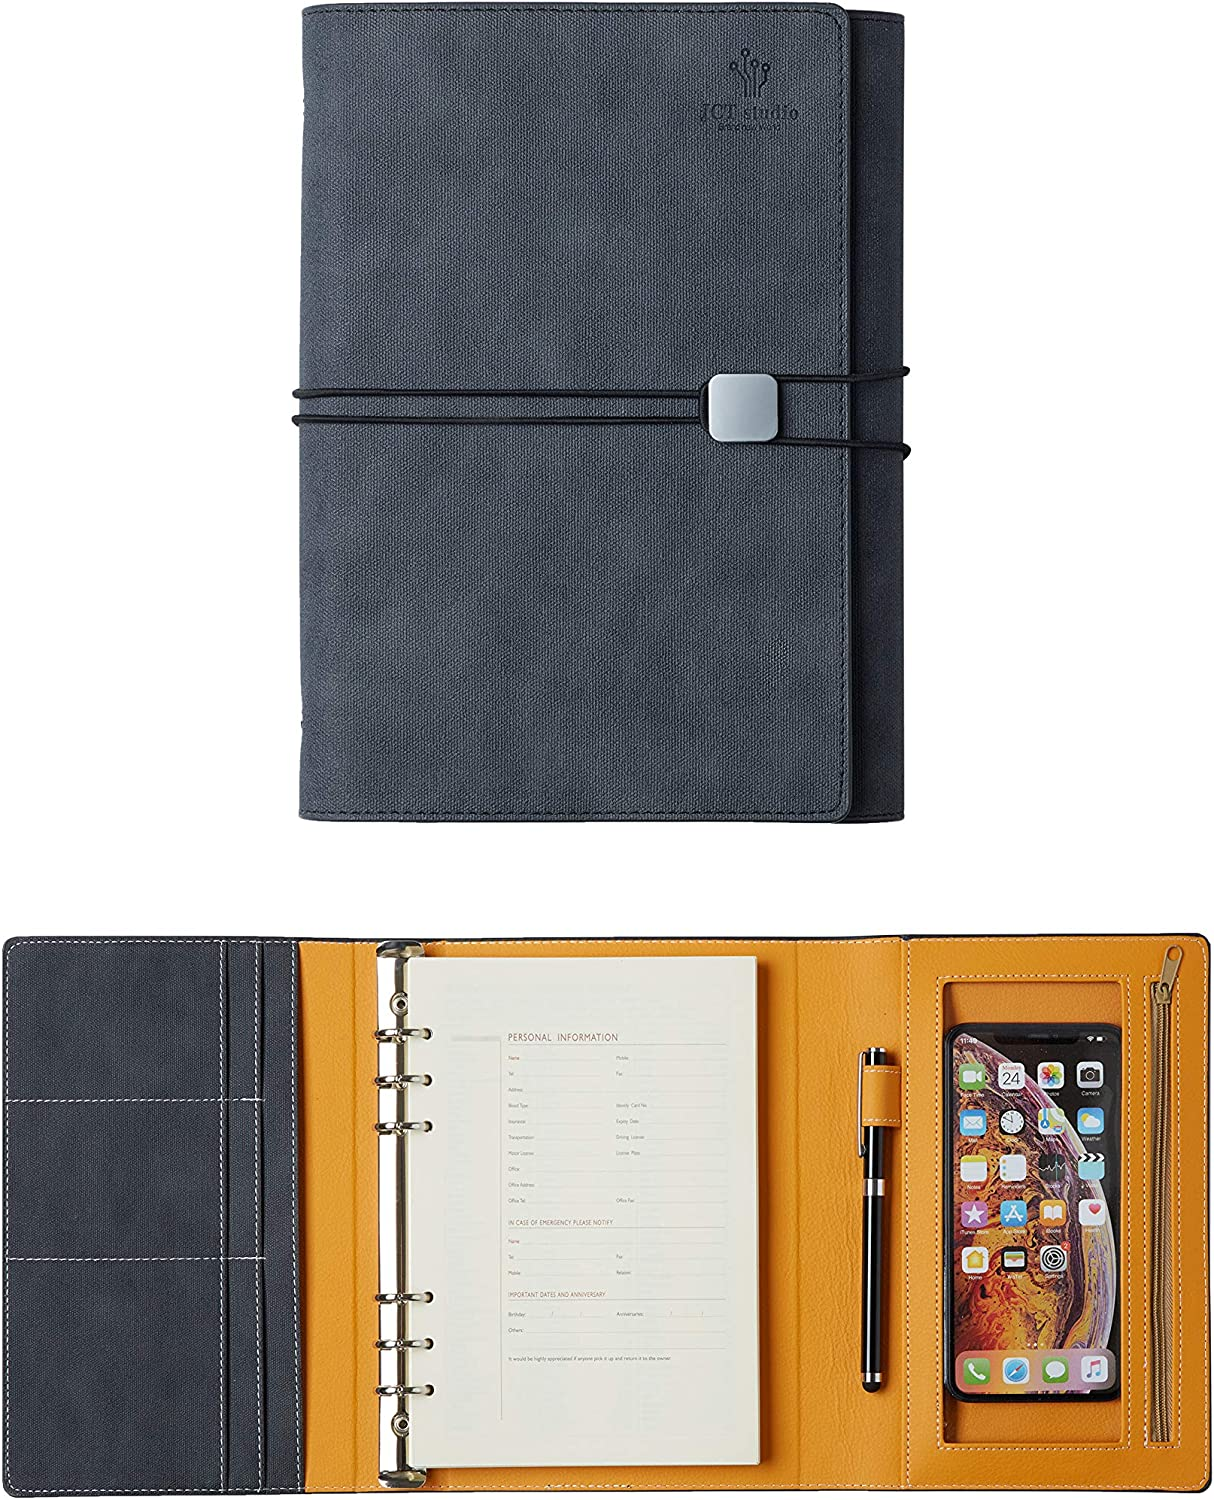 JCT Hardcover Organizer Notebook - Faux Leather Journal with Pen Holder + Phone Pocket + Business Card Holder + Binders, Bonus Touch Screen Pen & A5 6 Hole Resume Papers & Lovely Sticker (Gray)